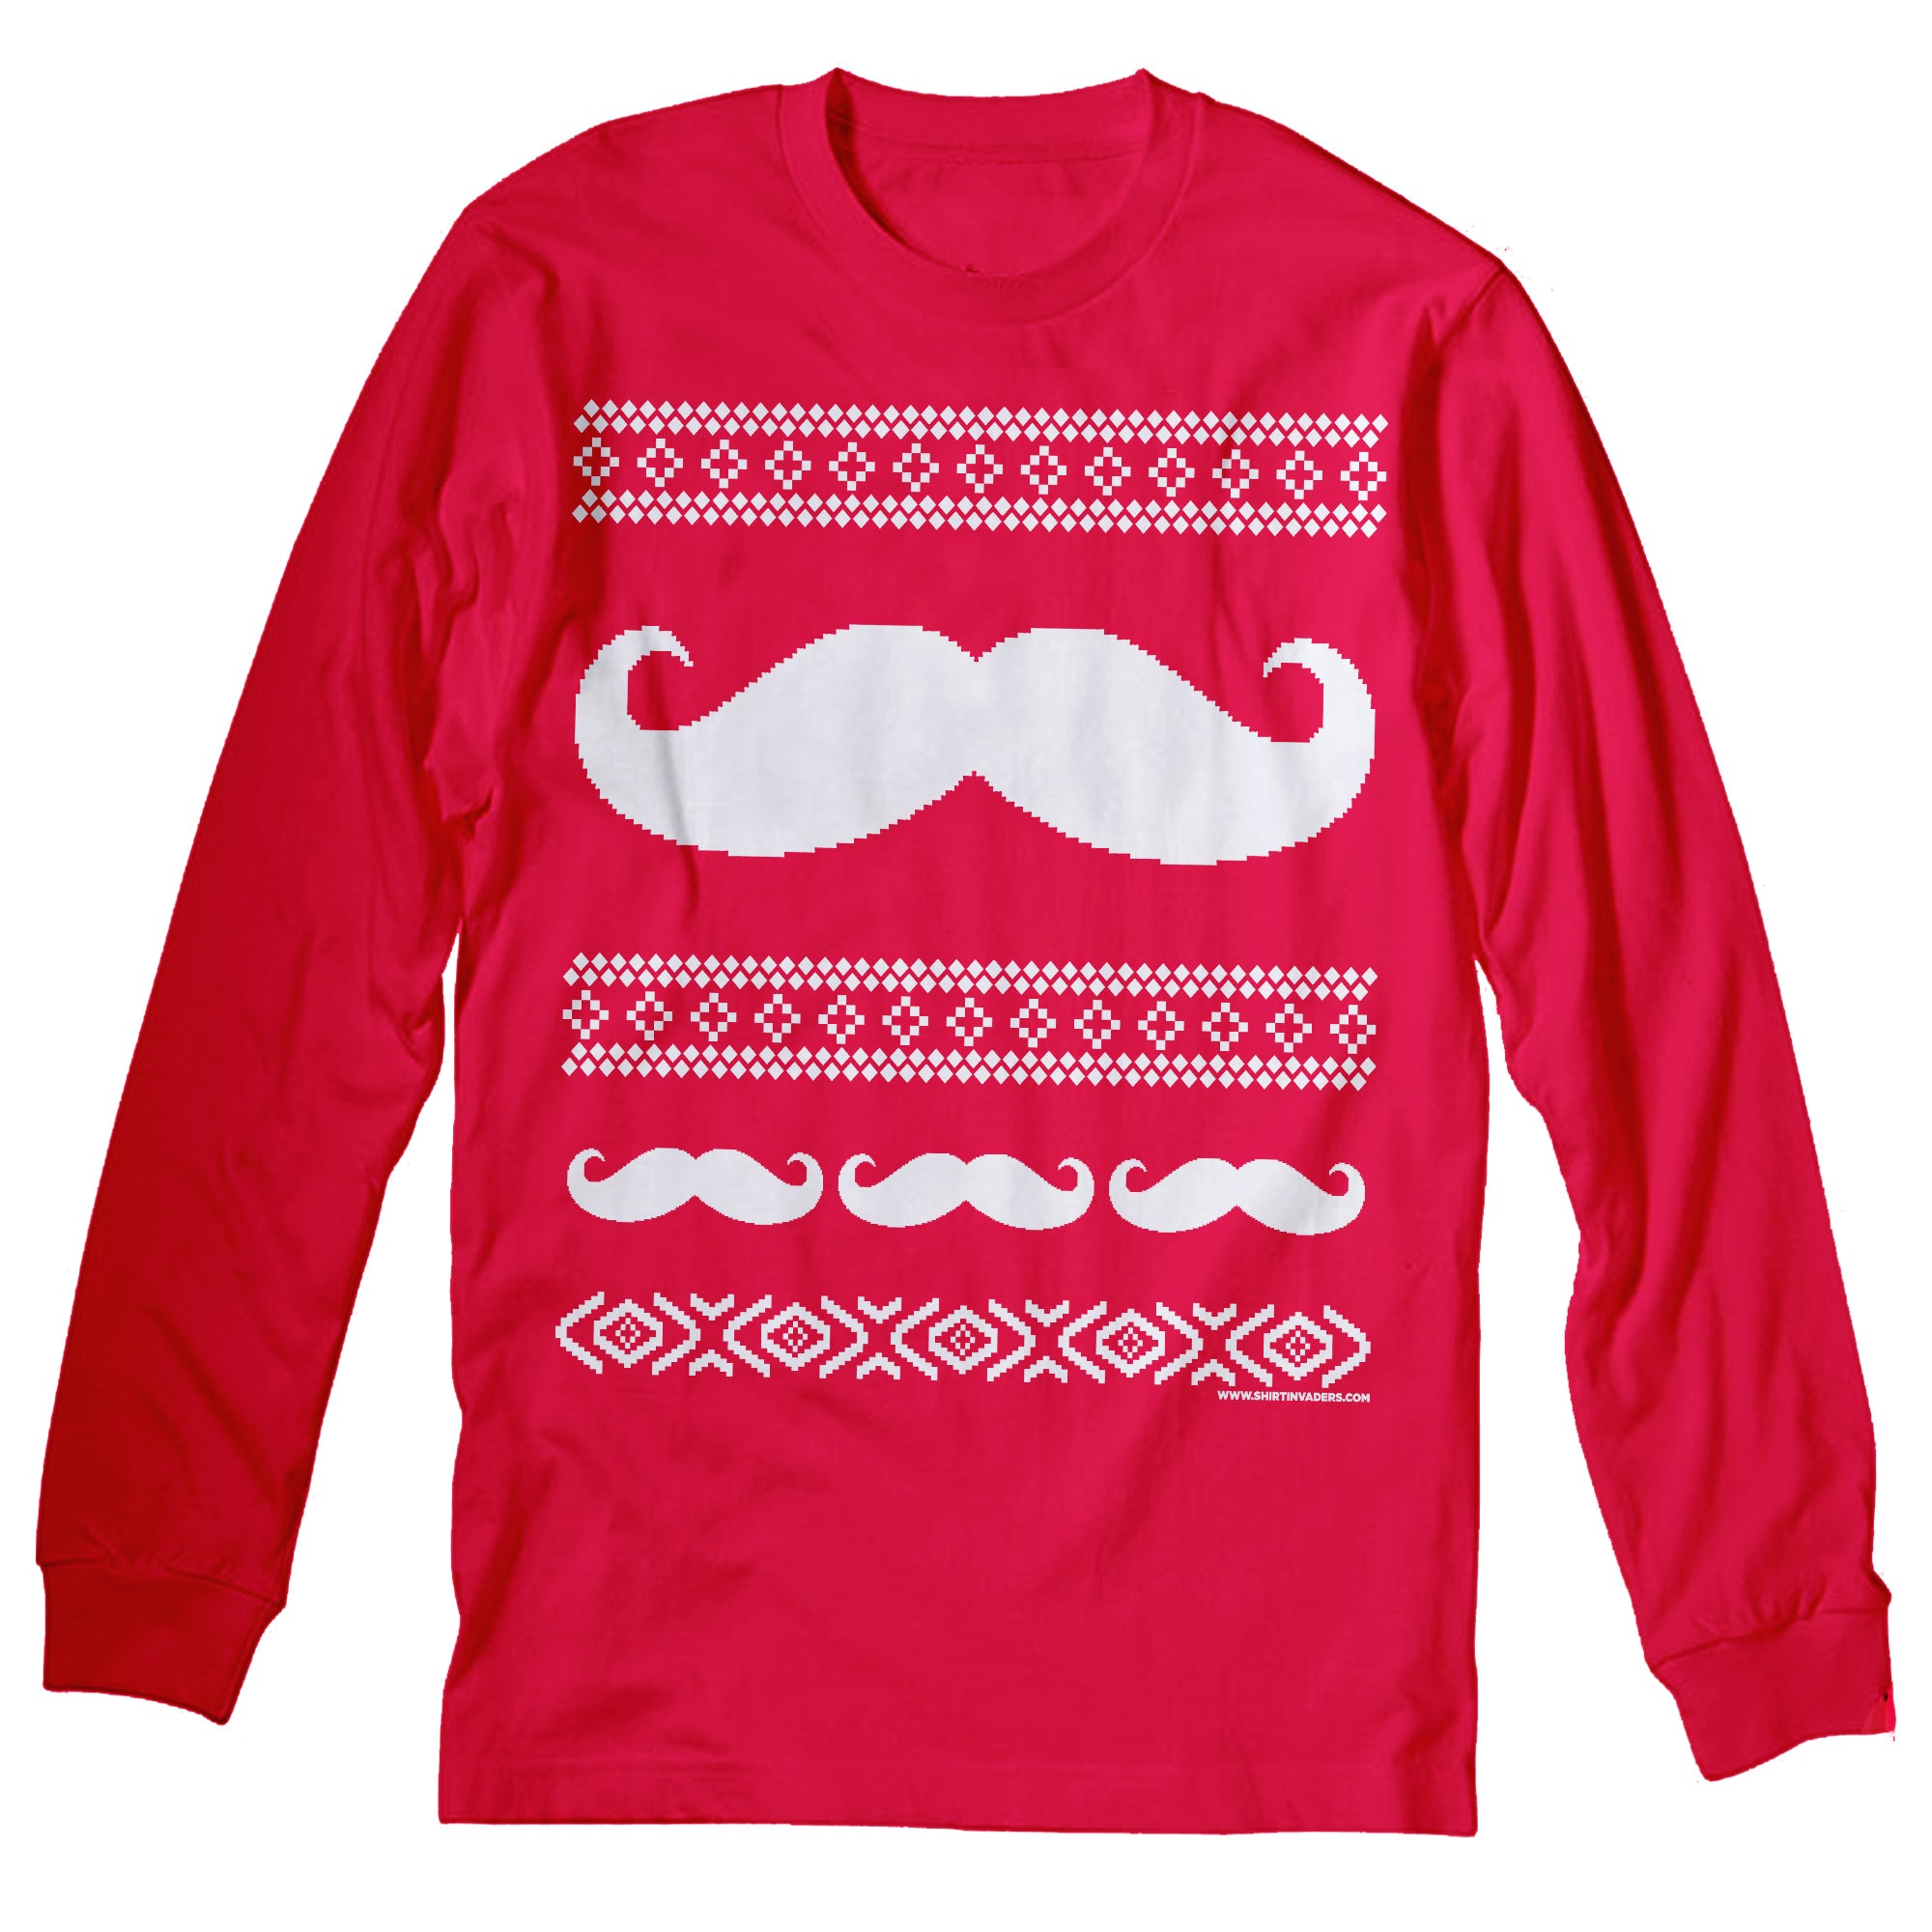 Mustache Sweater - Christmas Long Sleeve Shirt